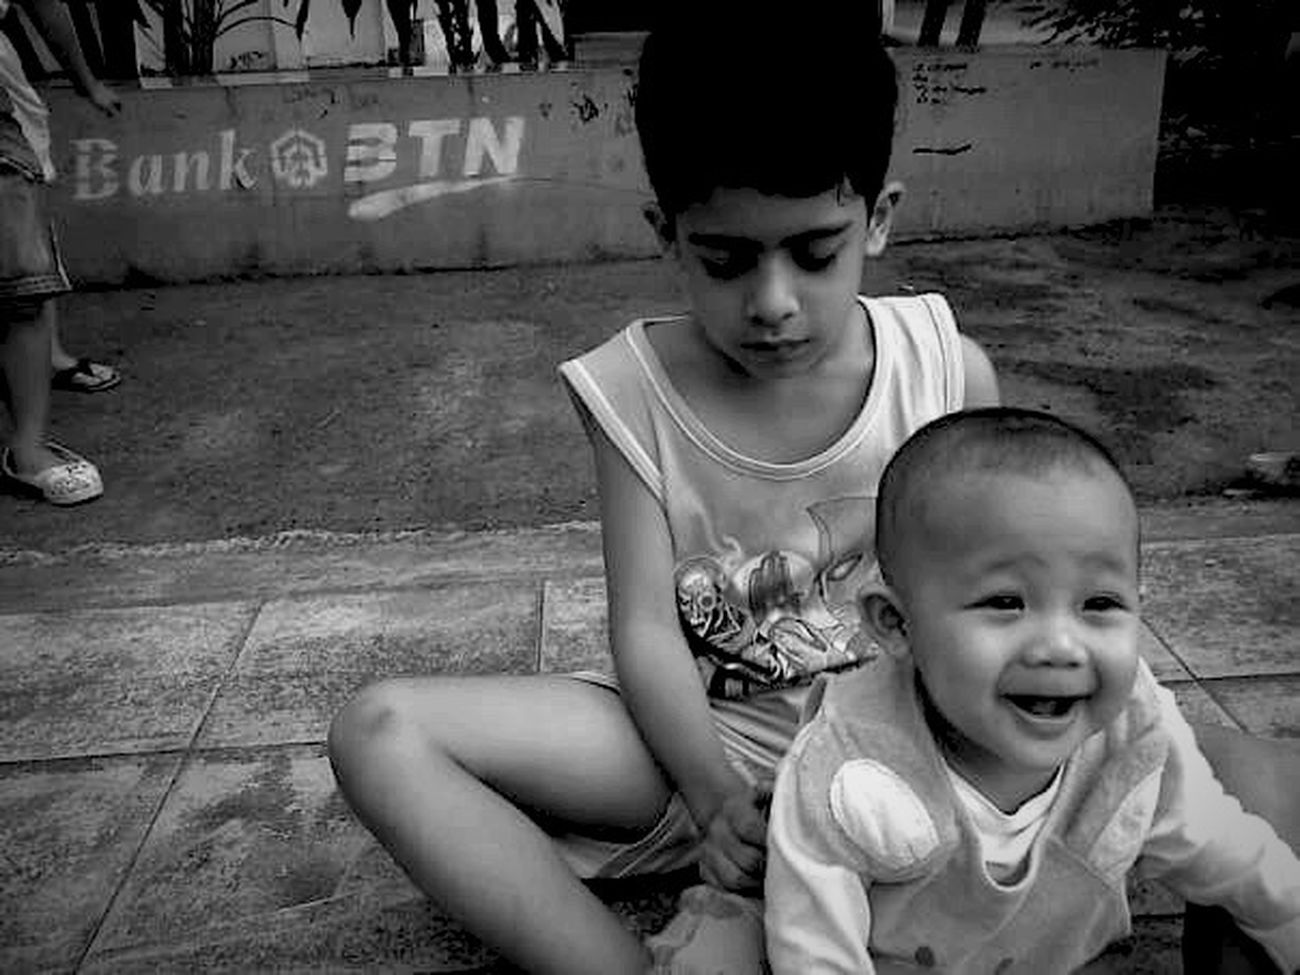 Blackandwhite Two People Females Archival Baby Childhood People Human Body Part Togetherness Outdoors Adult Day Bnw Black And White EyeEm Best Shots - Black + White Monochrome Monochrome Photography EyeEm Bnw IPhoneography Smartphonephotography People Photography People Watching Mobilephotography EyeEm Gallery EyeEm